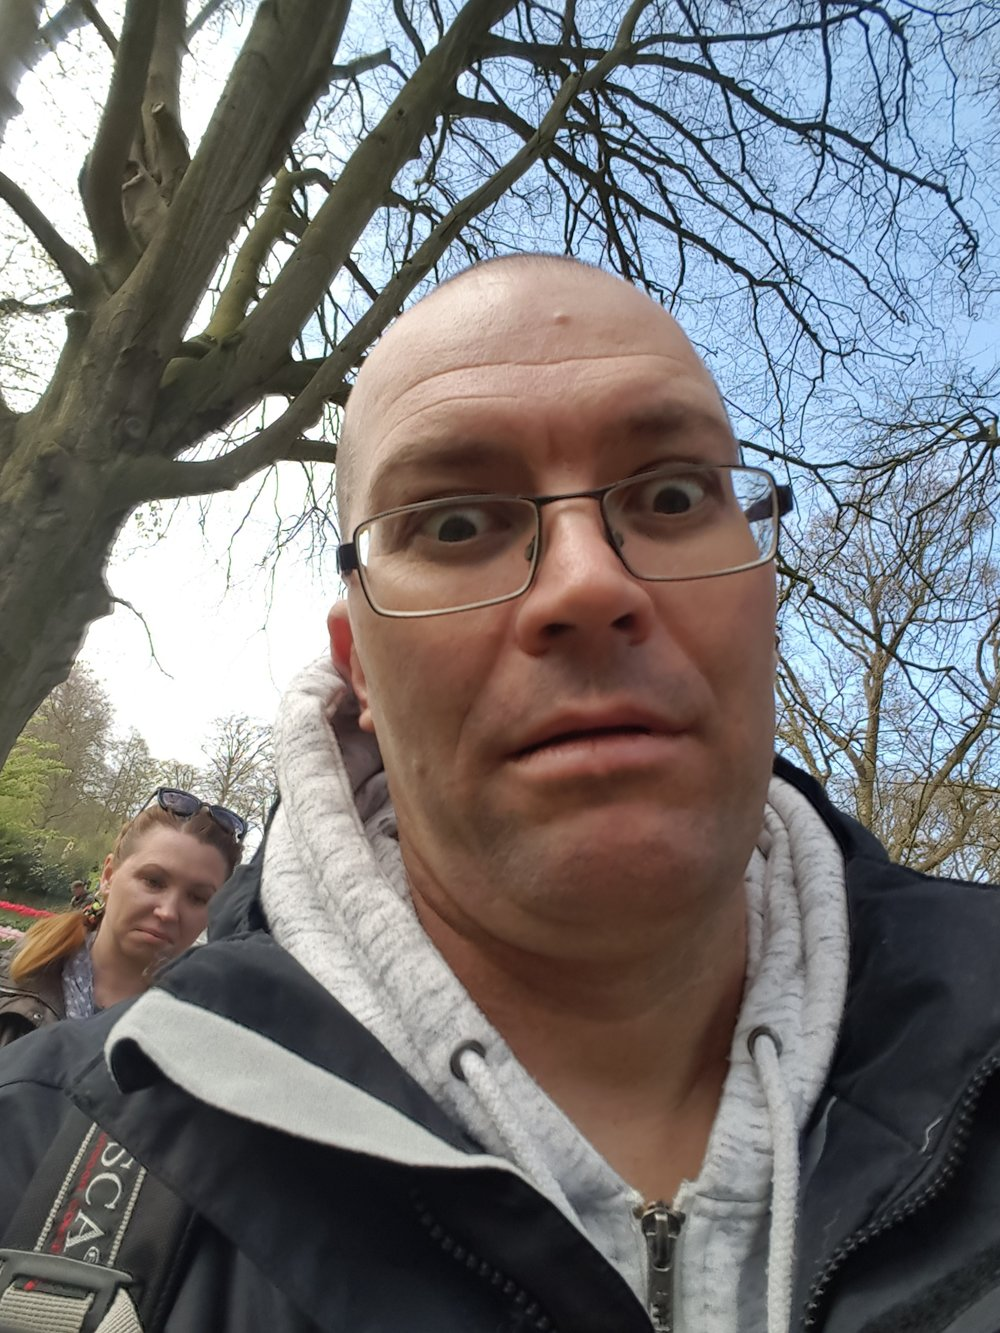 This was the face after 4 hours at Keukenhof. This photo had me laughing for days!